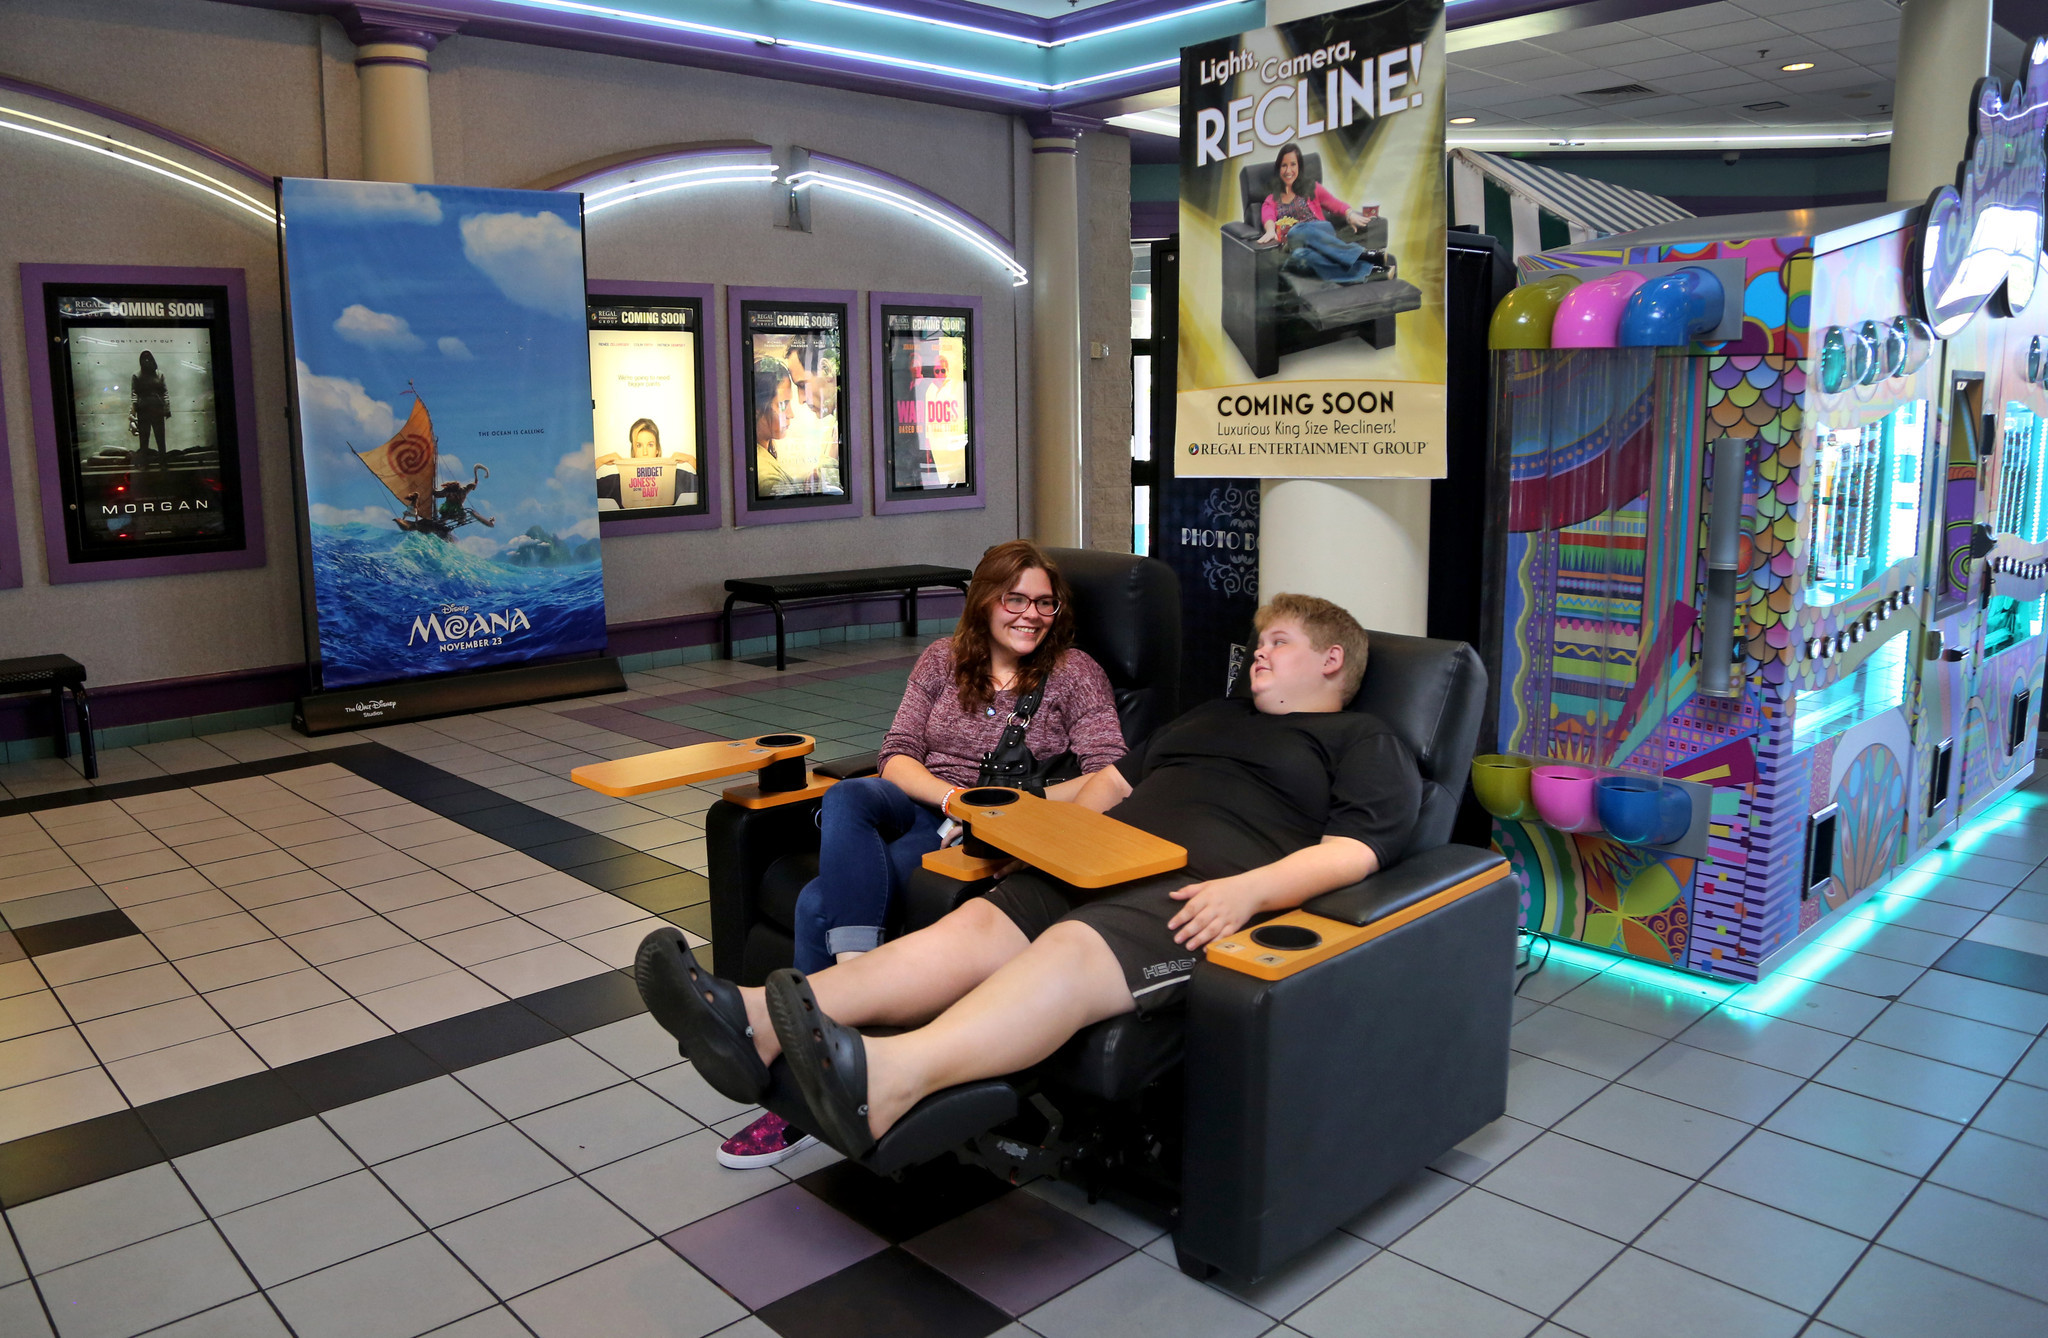 South Florida Theaters Lure Moviegoers With King Size